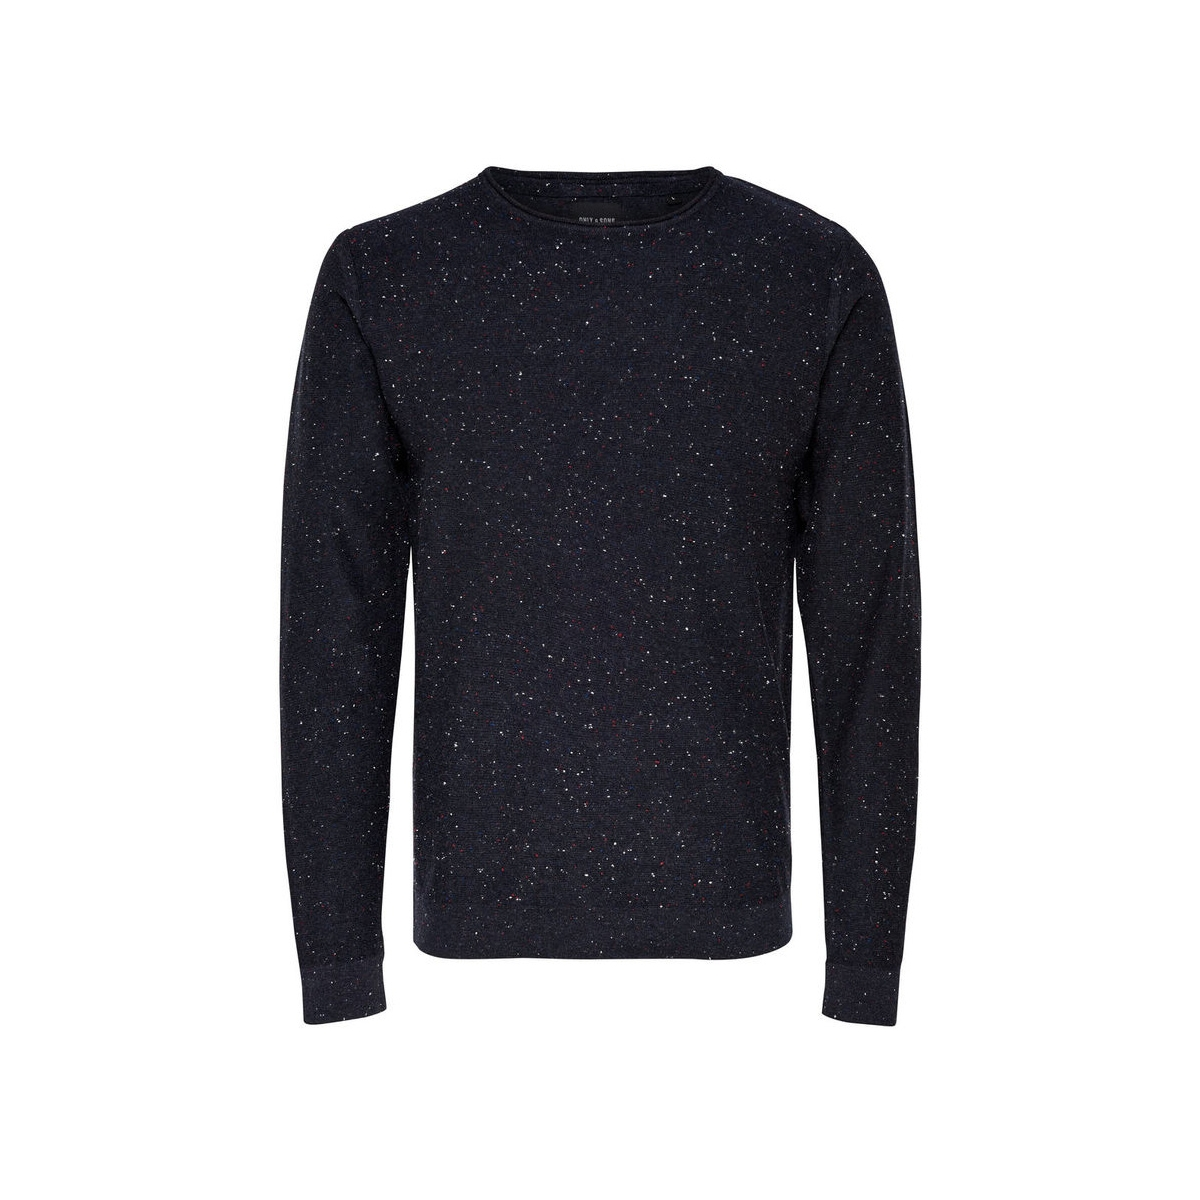 onsdian naps crew neck knit noos 22003869 only & sons trui dark navy